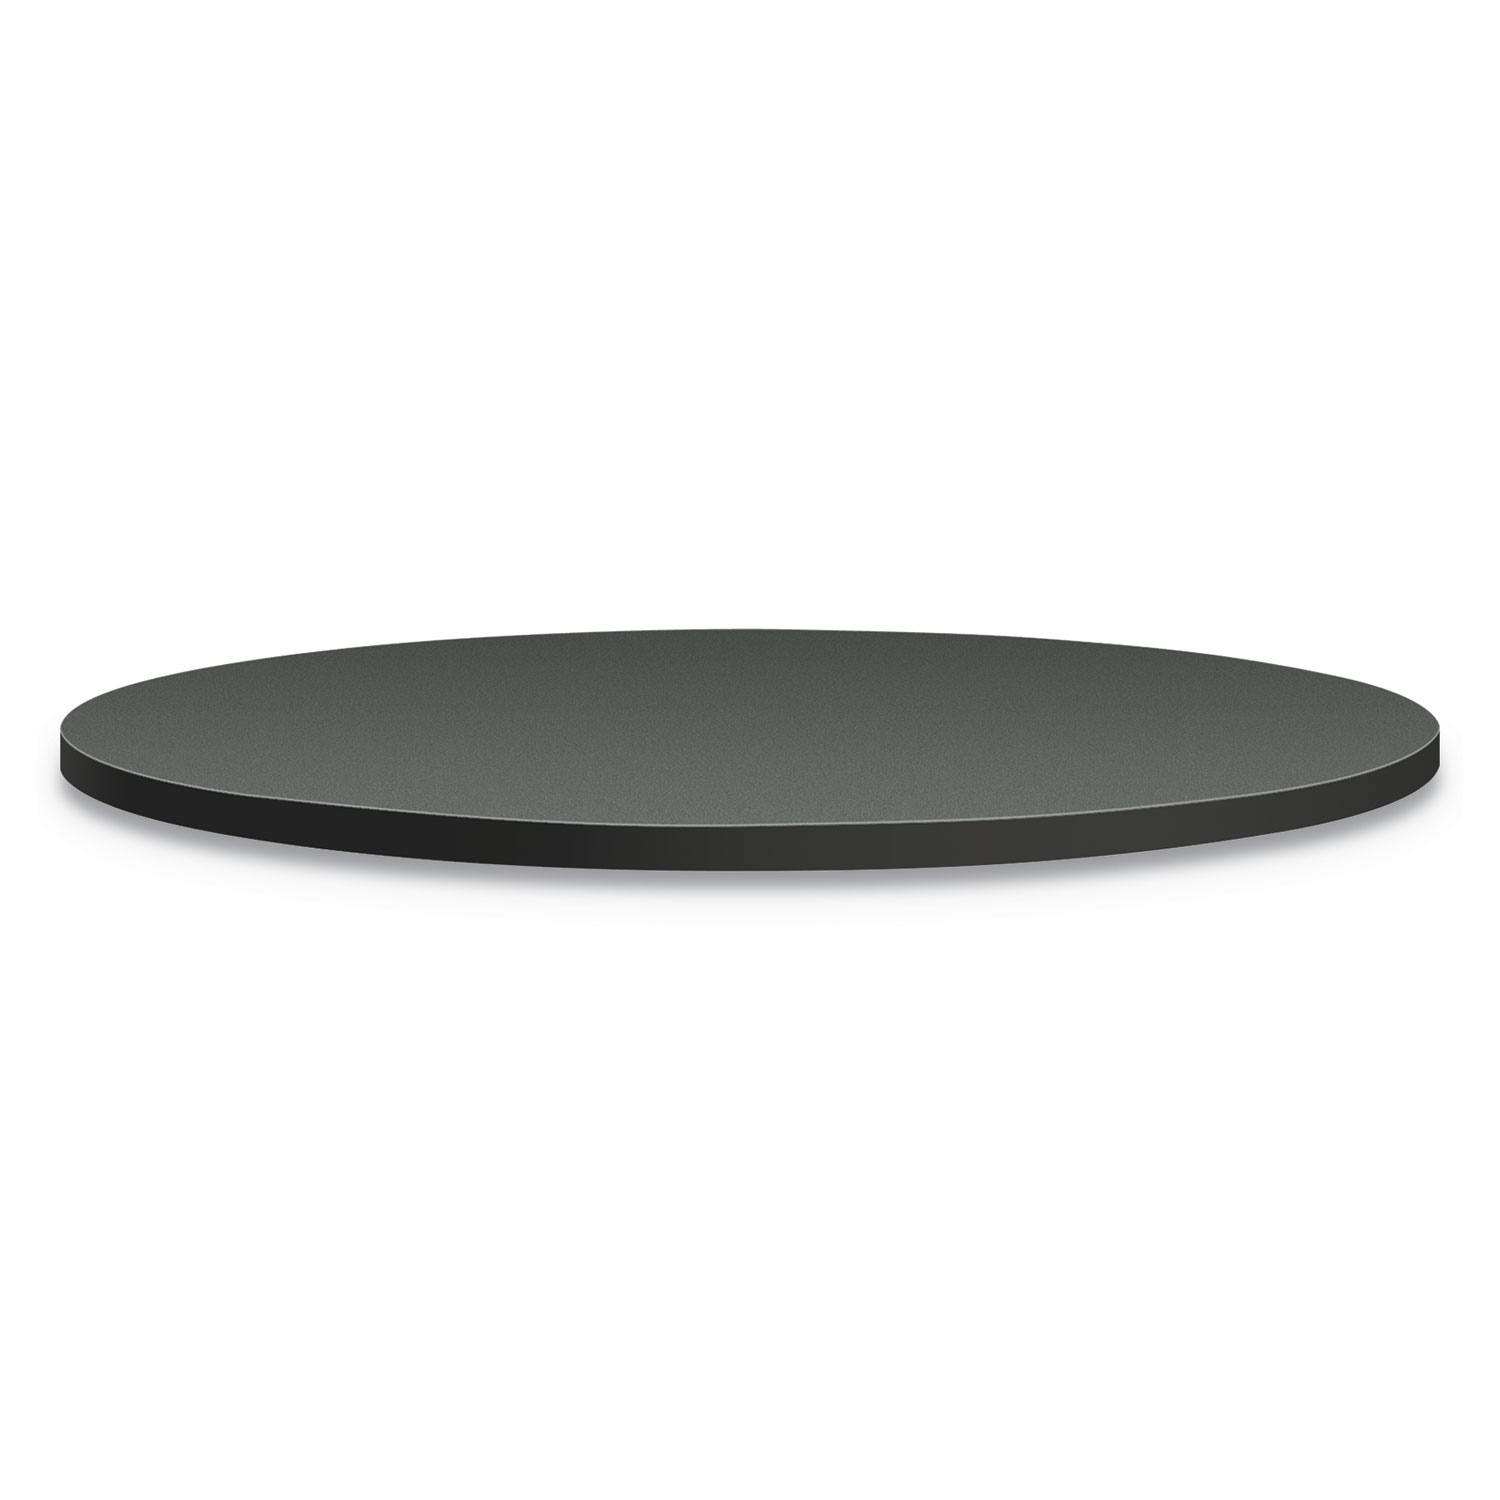 Round Table Tops Between Round Table Tops 30